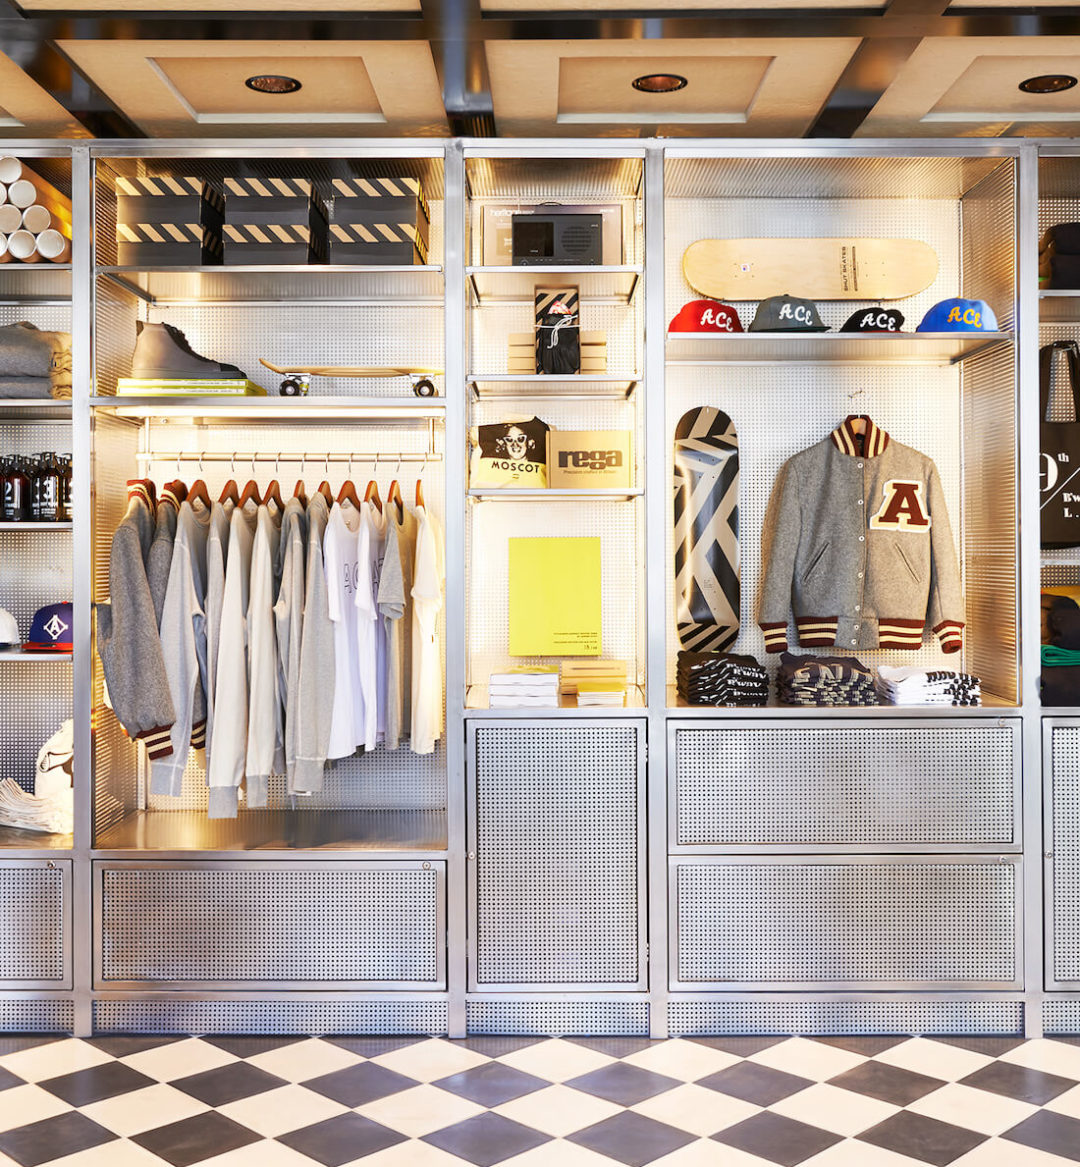 A closet with t-shirts, jacket, hats, shoes and board.